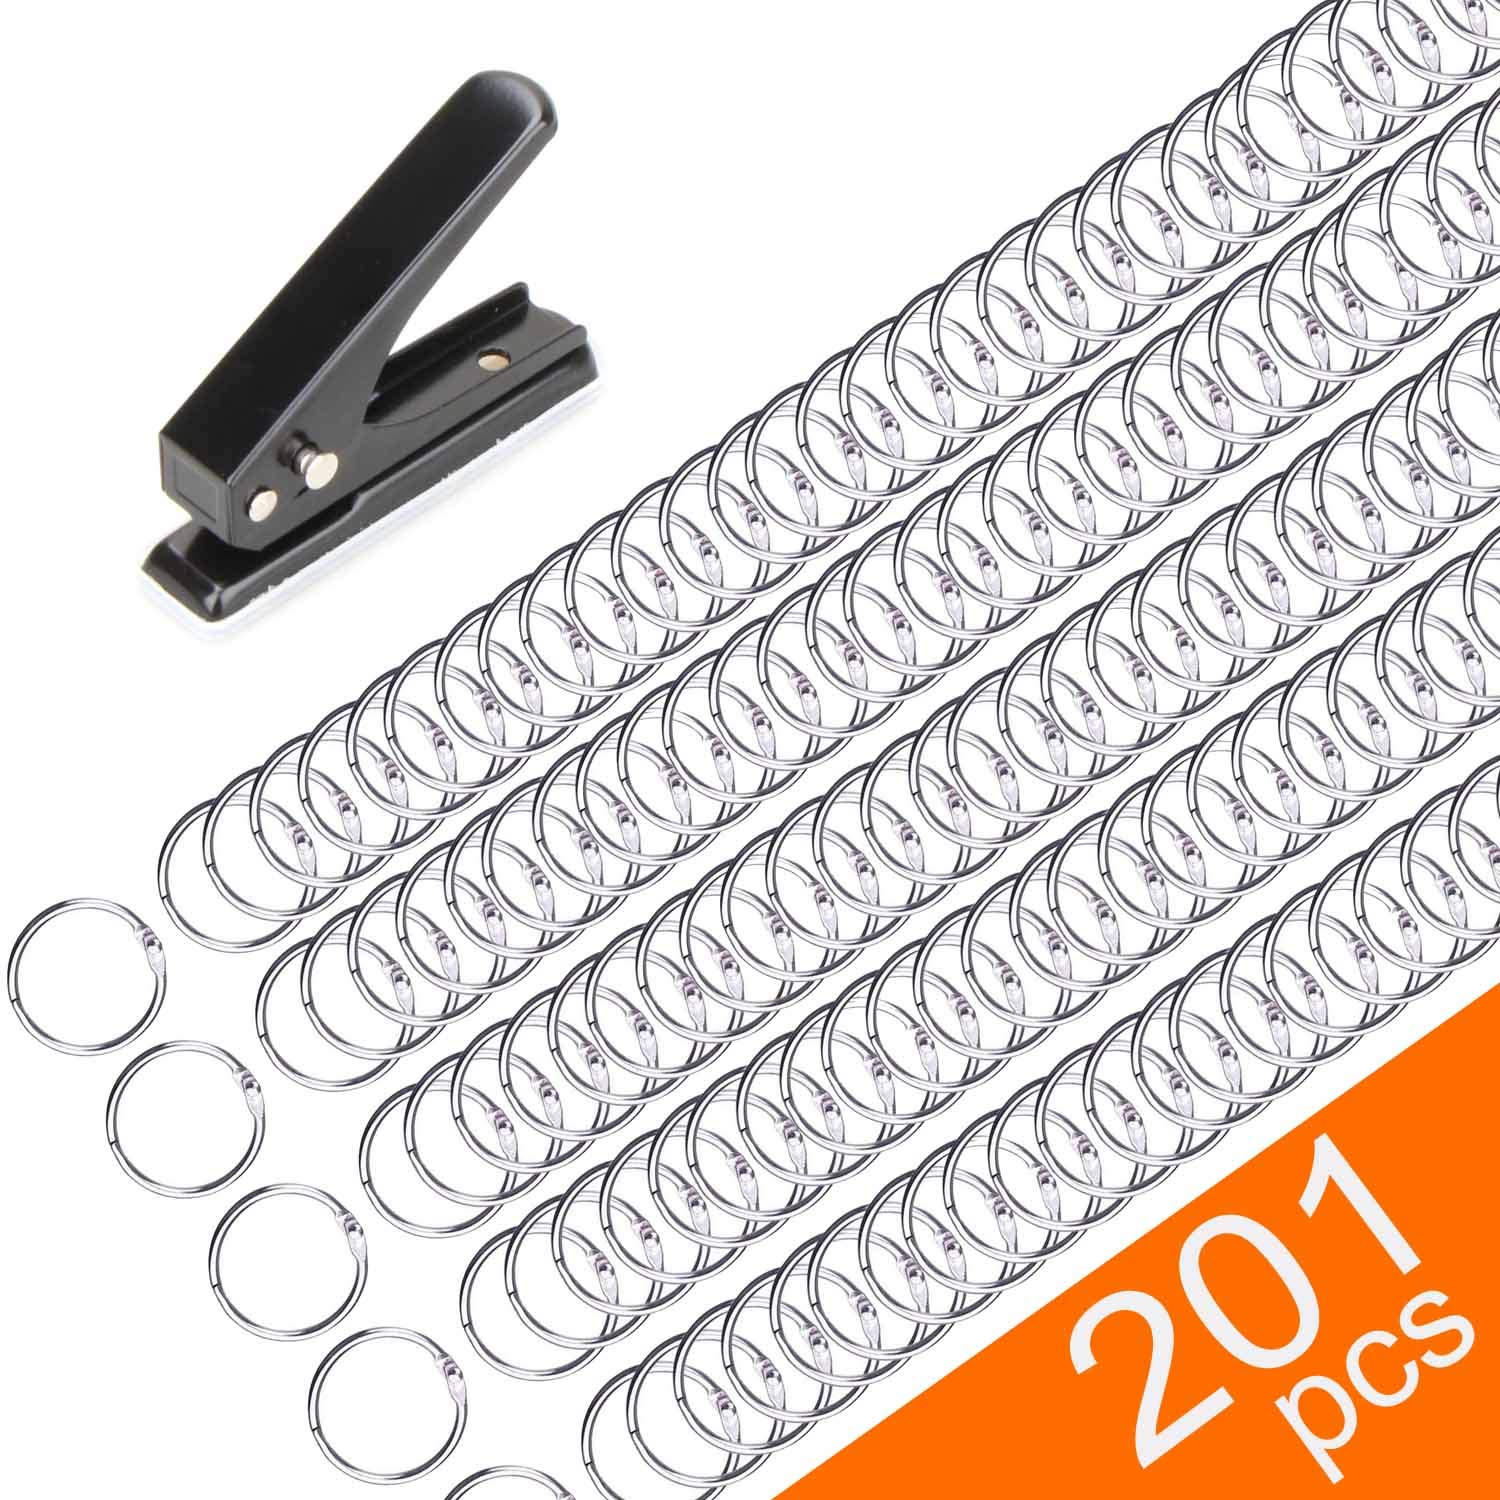 200 Pack Book Rings, Small 1-Inch Metal Rings, Nickel Plated Metal Rings for Flashcards, Index Card Rings, Come with Single Hole Punch Low Force 1-Hole Punch, 20 Sheets Punch Capacity, 1/4'' Holes by VICNOVA